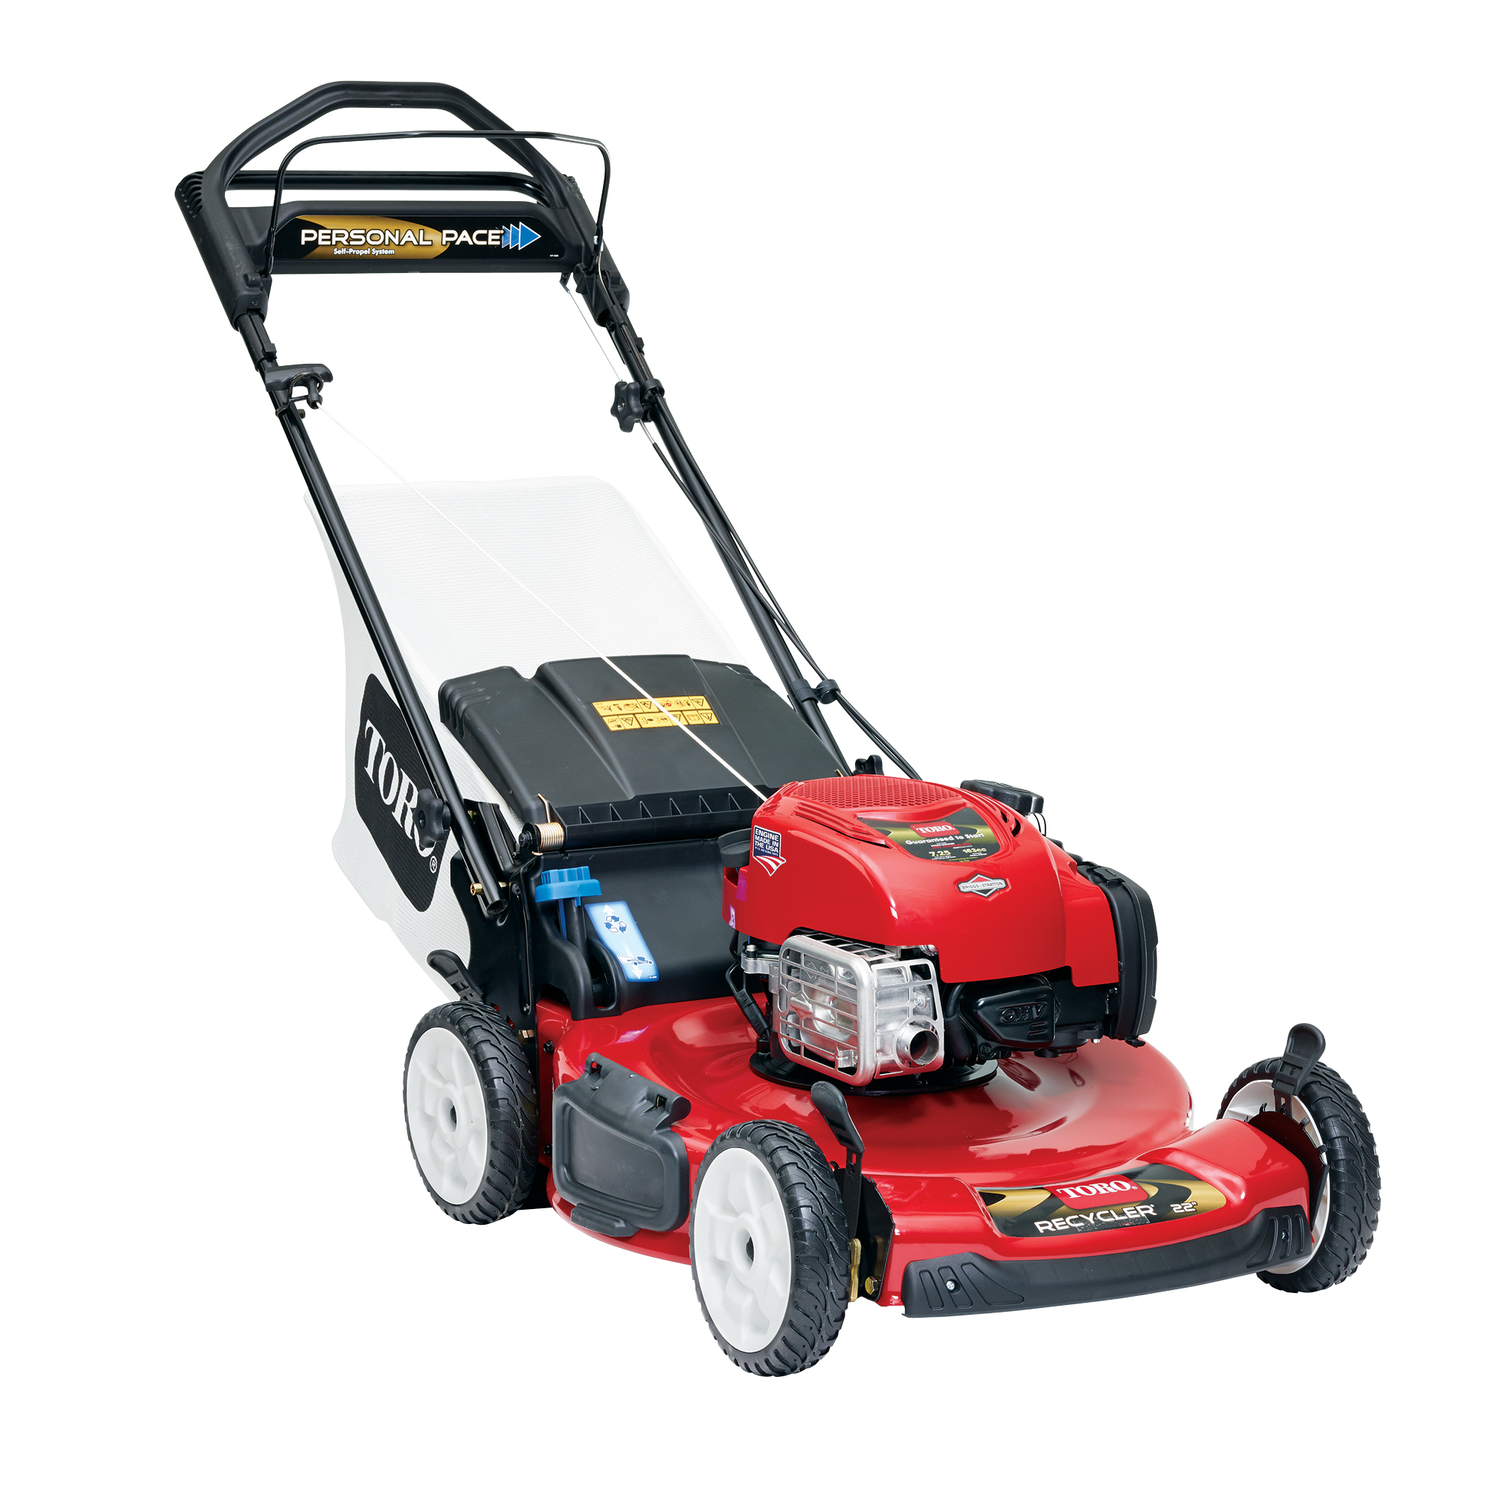 Ace Hardware Riding Lawn Mower Wiring Diagram Trusted Husqvarna Toro Personal Pace 22 In W 163 Cc Self Propelled Mulching